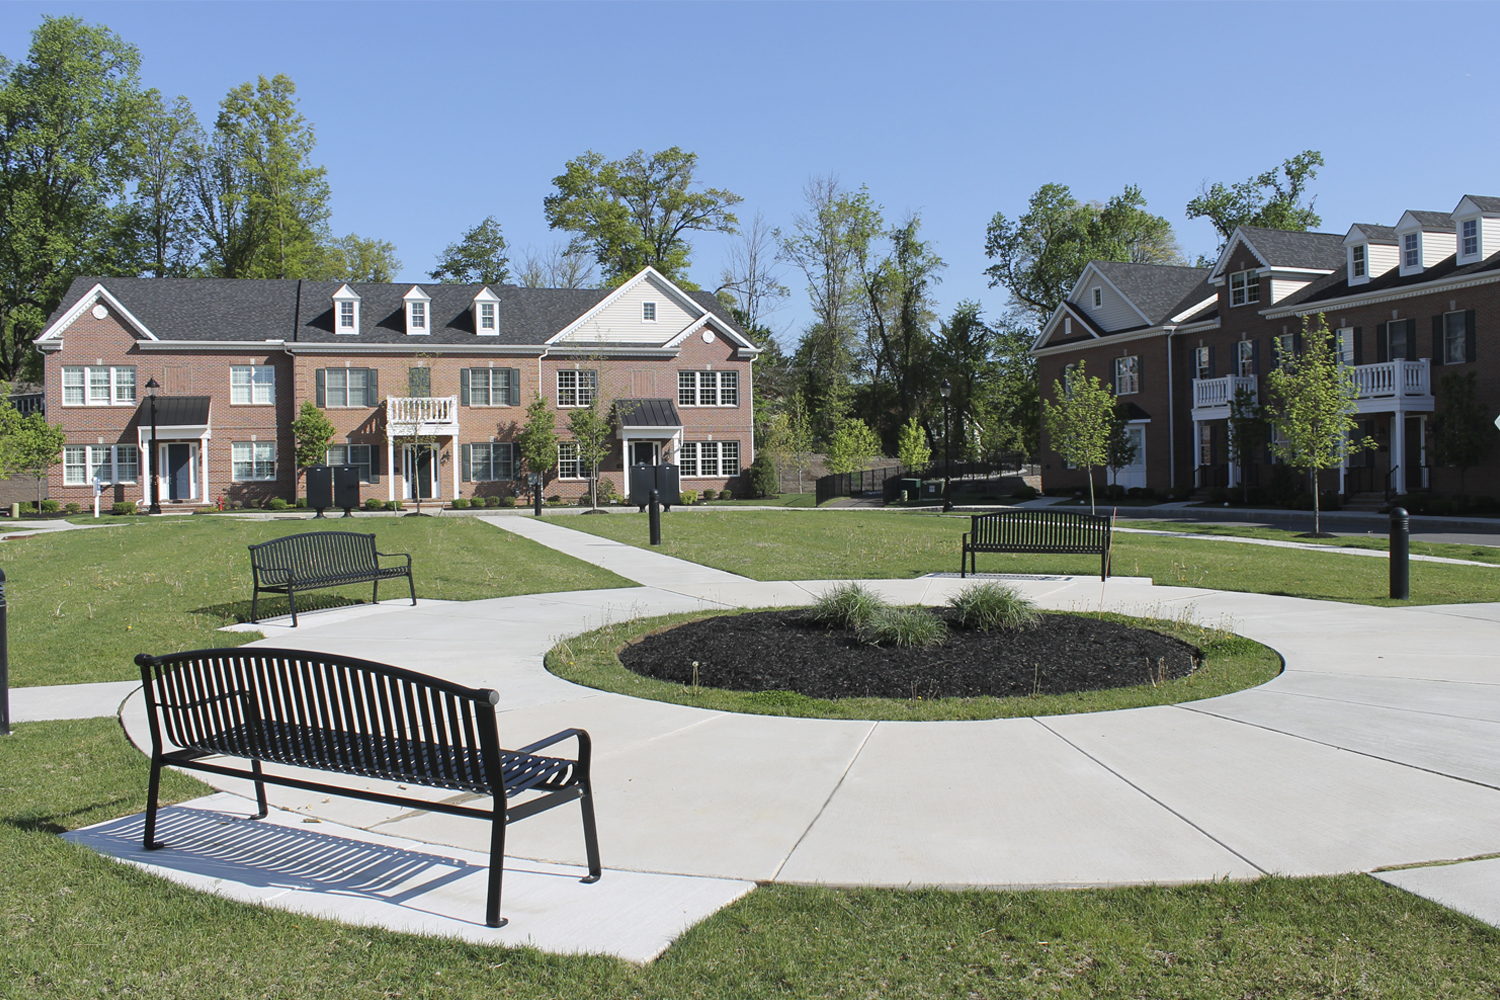 Yardley Walk - Traditional Neighborhood Development